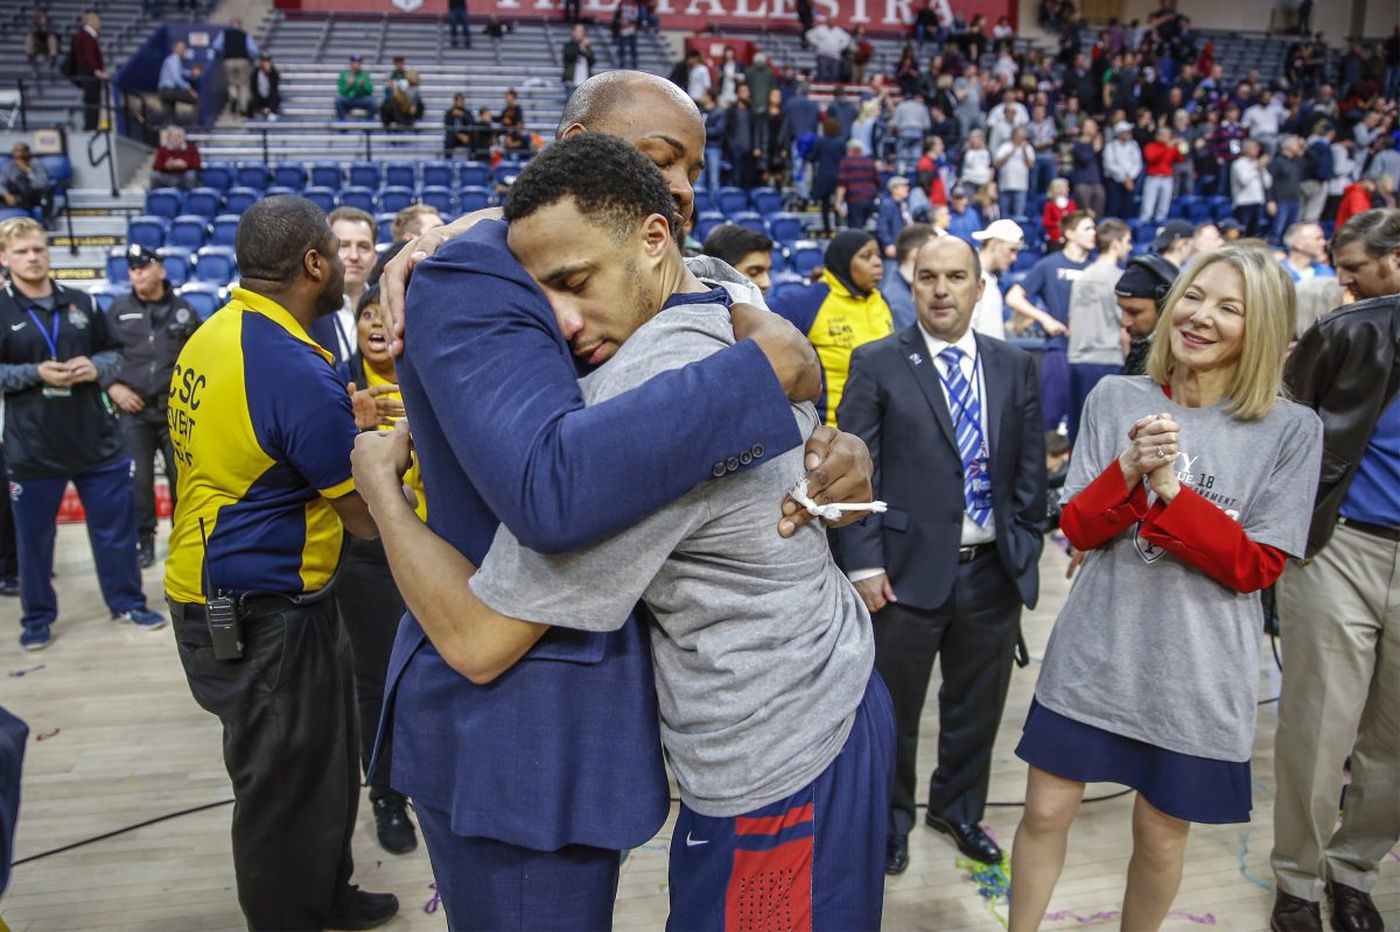 Penn's return to NCAA tournament has extra meaning for assistant coaches Ira Bowman and Nat Graham